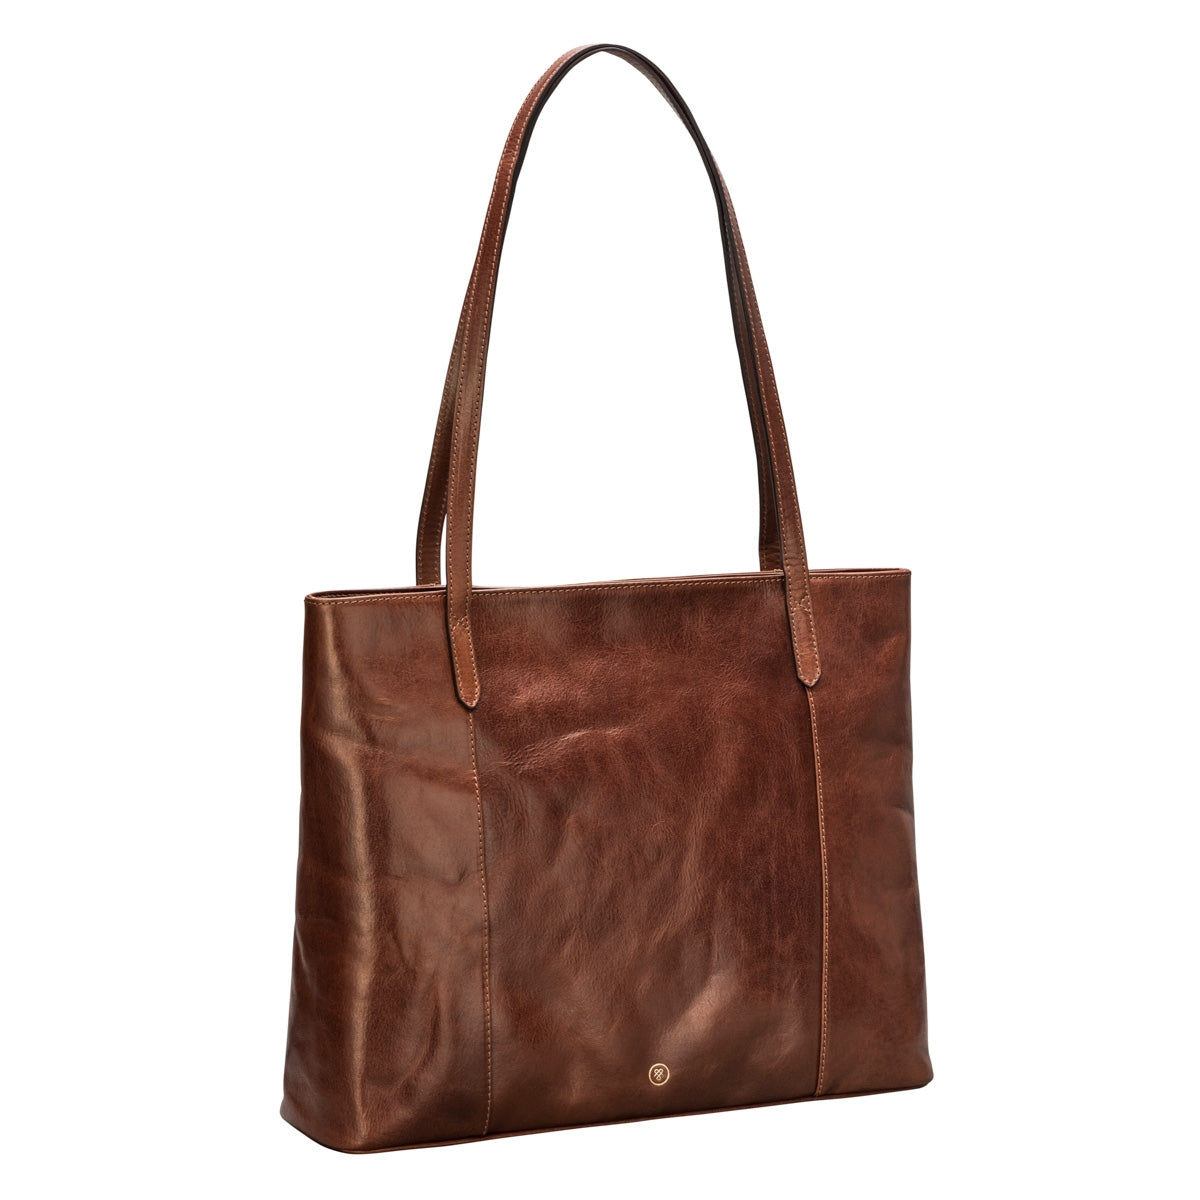 Image 2 of the 'Athenea' Chestnut Veg-Tanned Leather Shopper